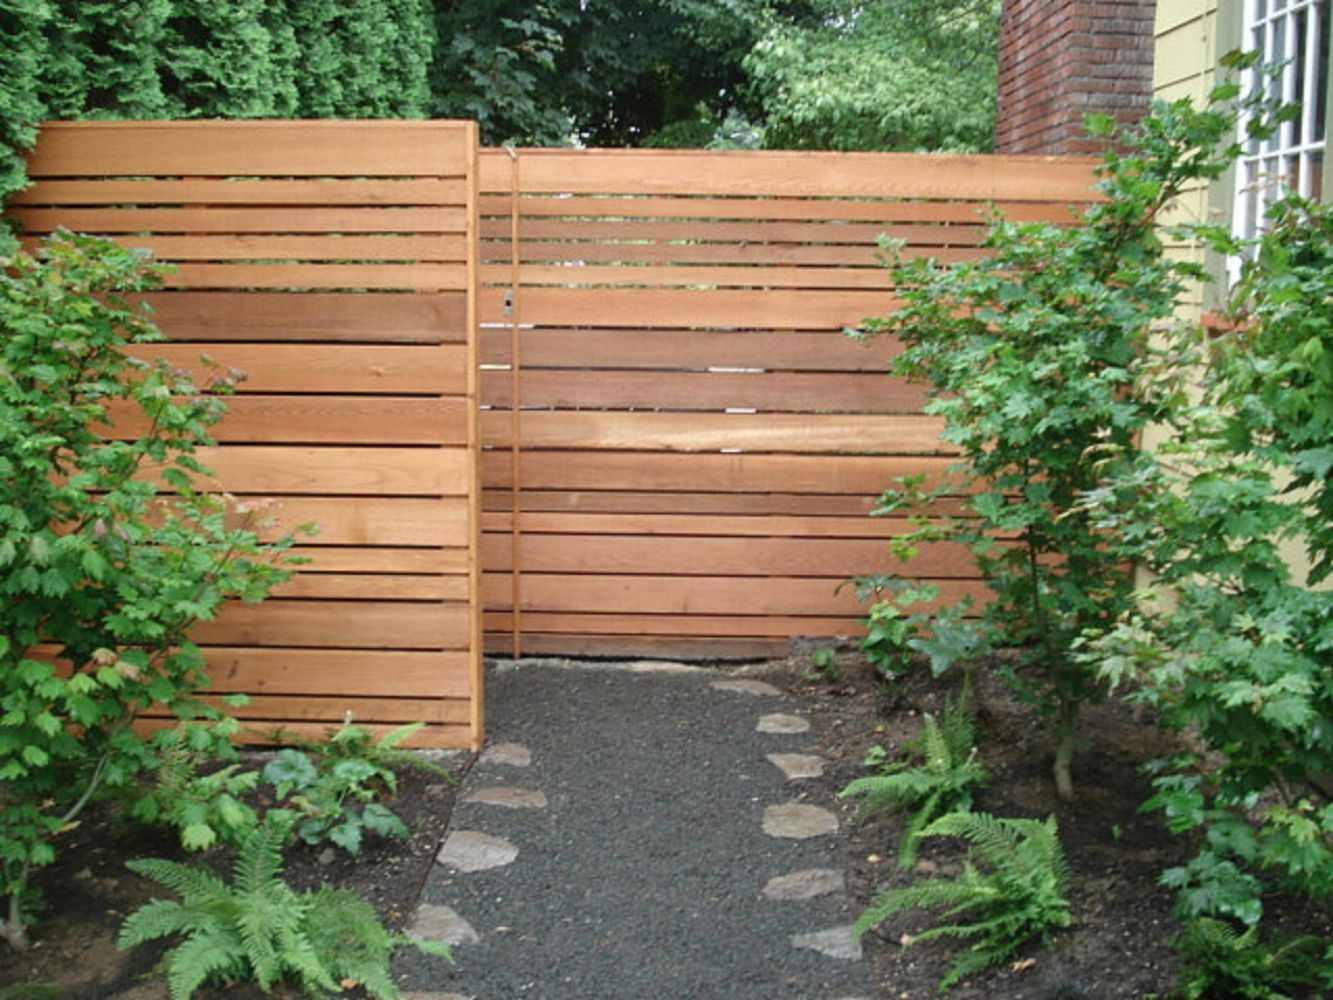 60 cheap diy privacy fence ideas awesome 60 and fence ideas 60 cheap diy privacy fence ideas baanklon Images